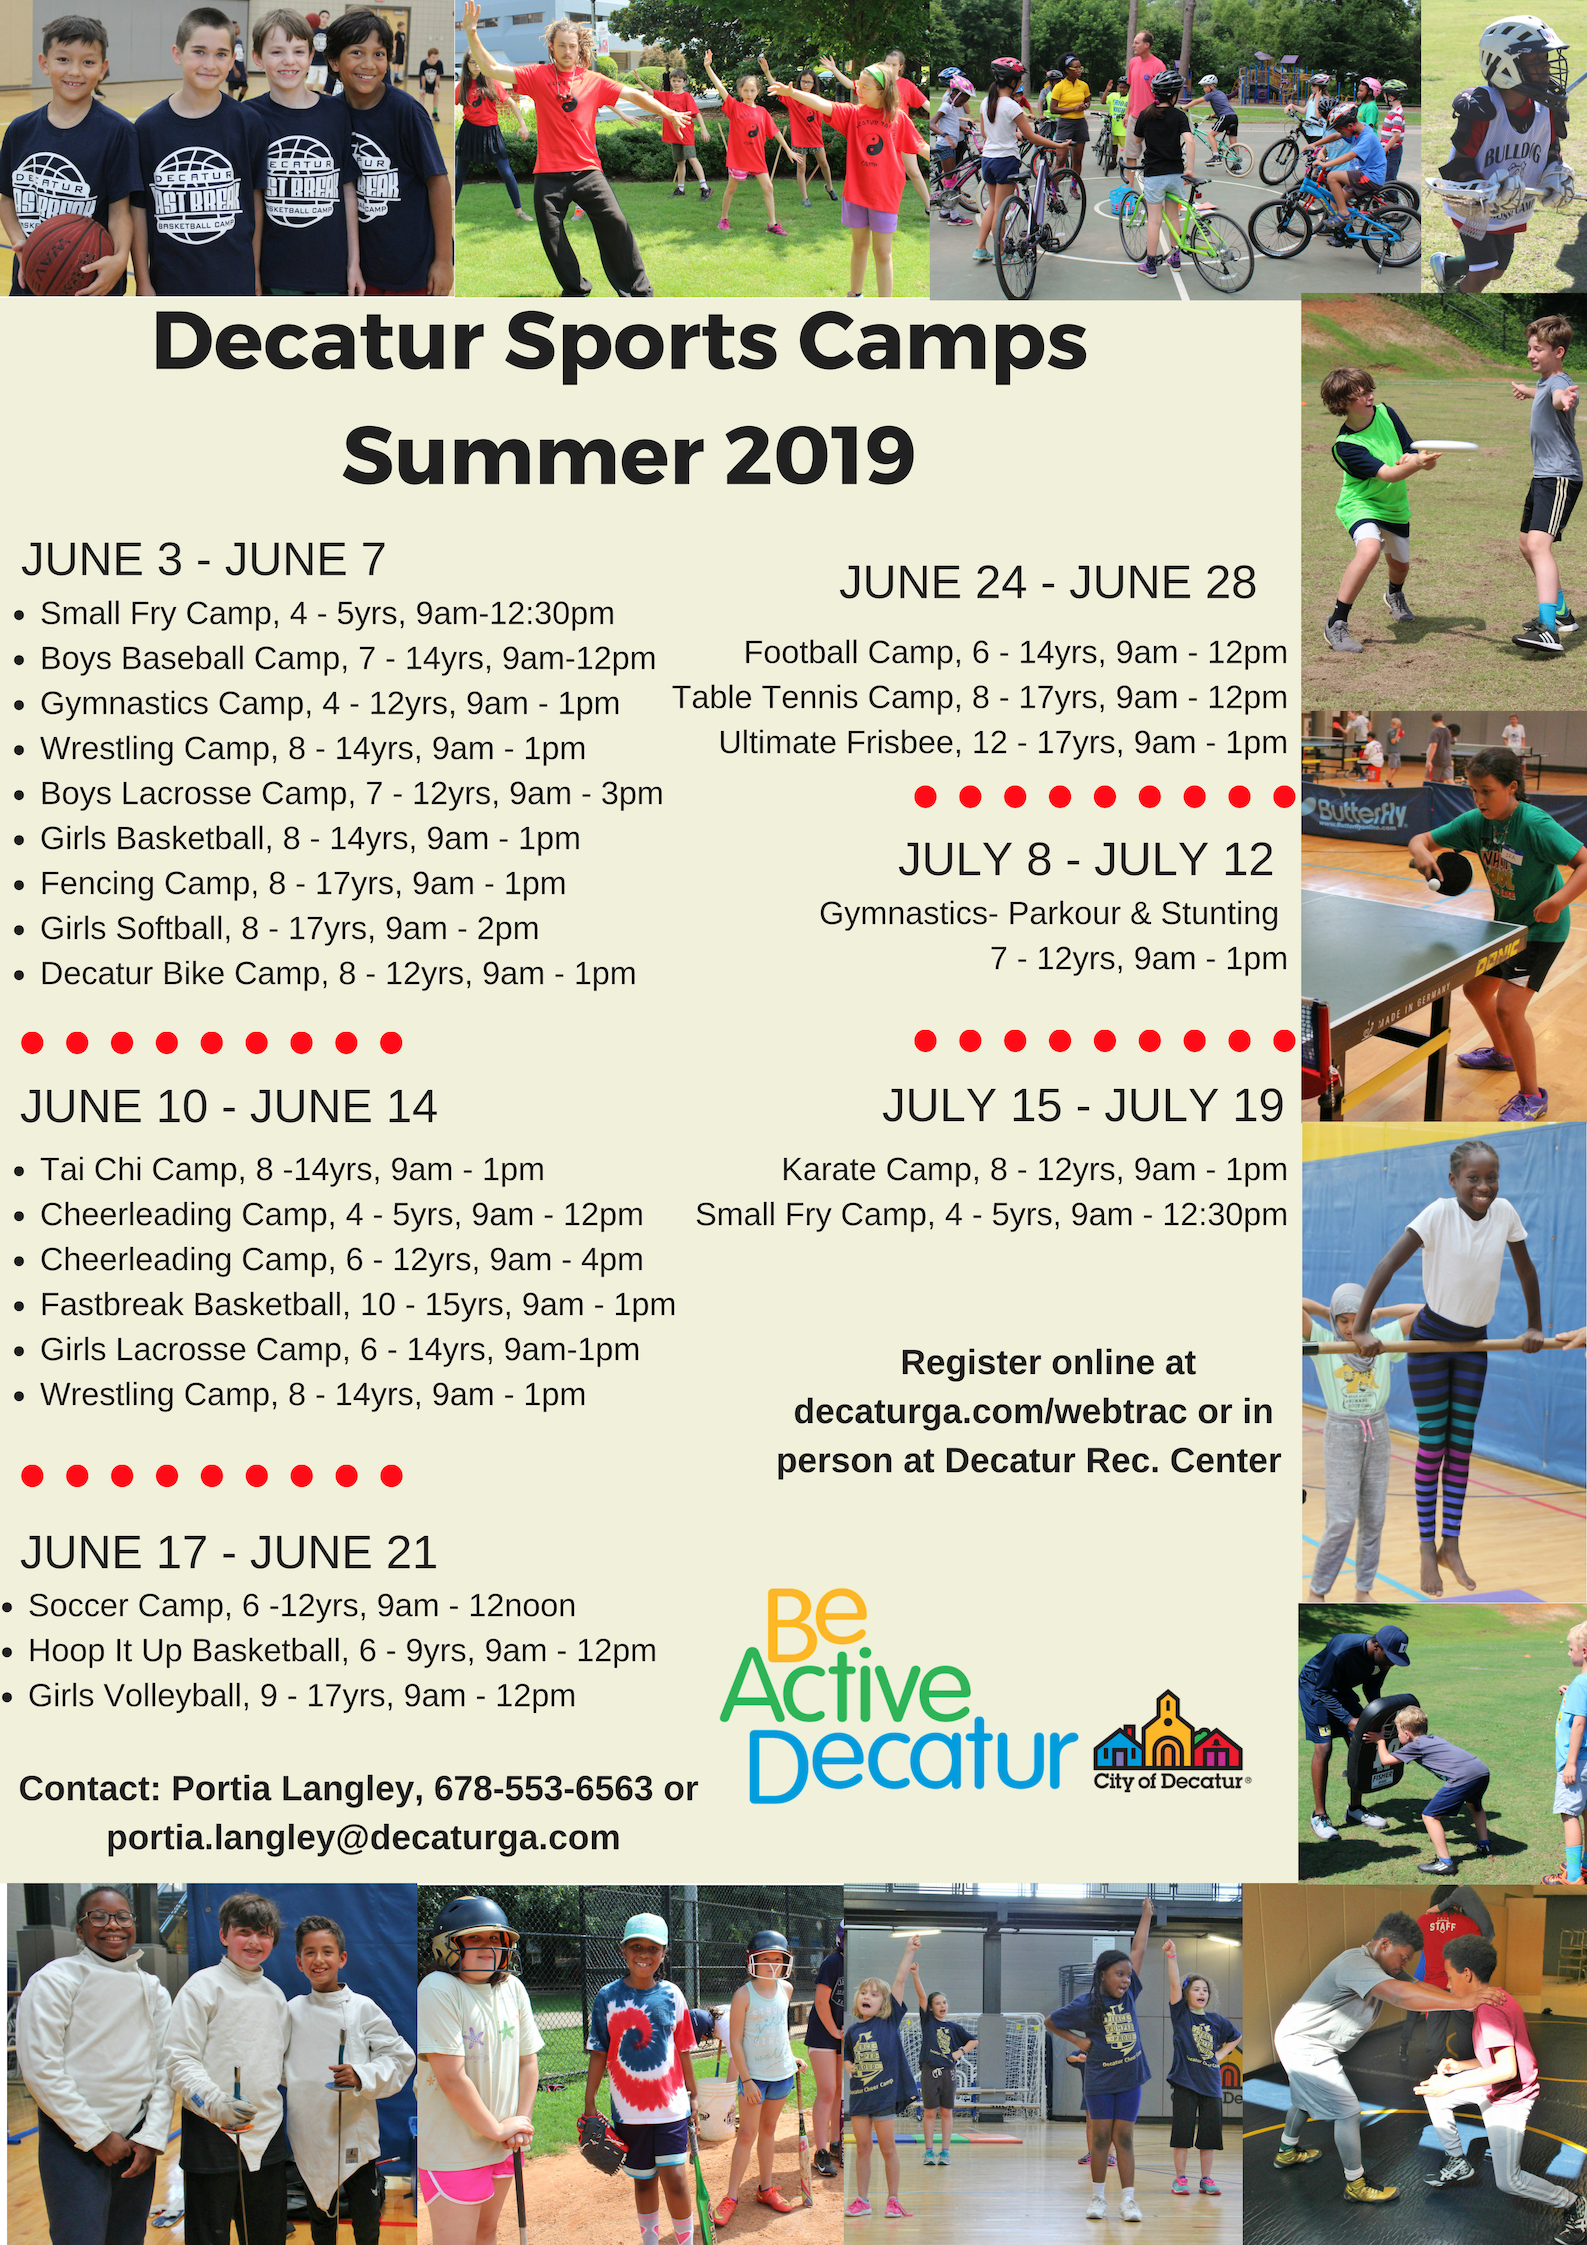 Decatur Summer Sports Camps